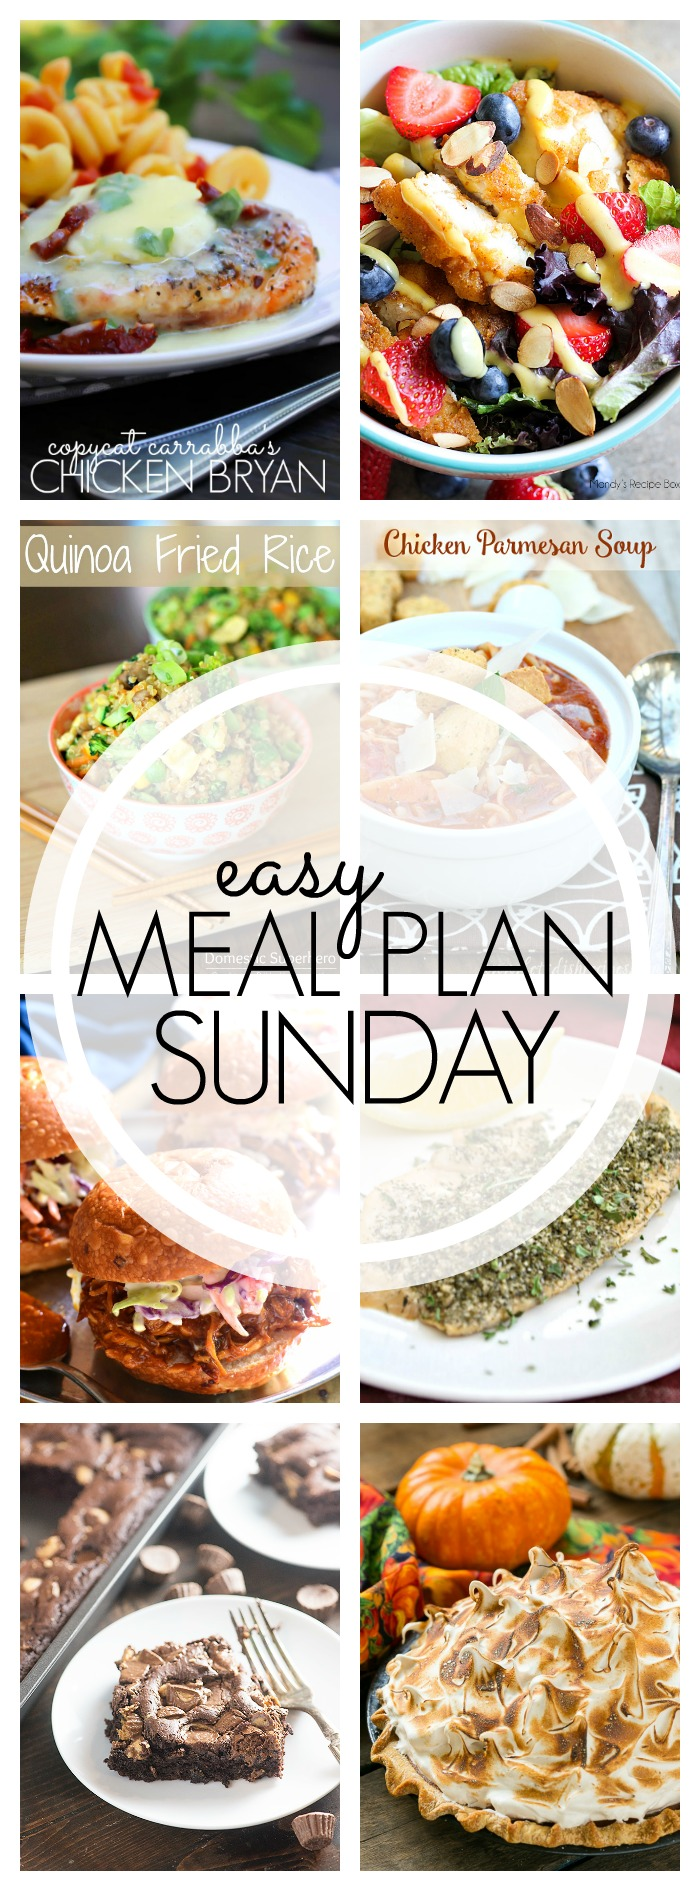 Easy Meal Plan Sunday #64